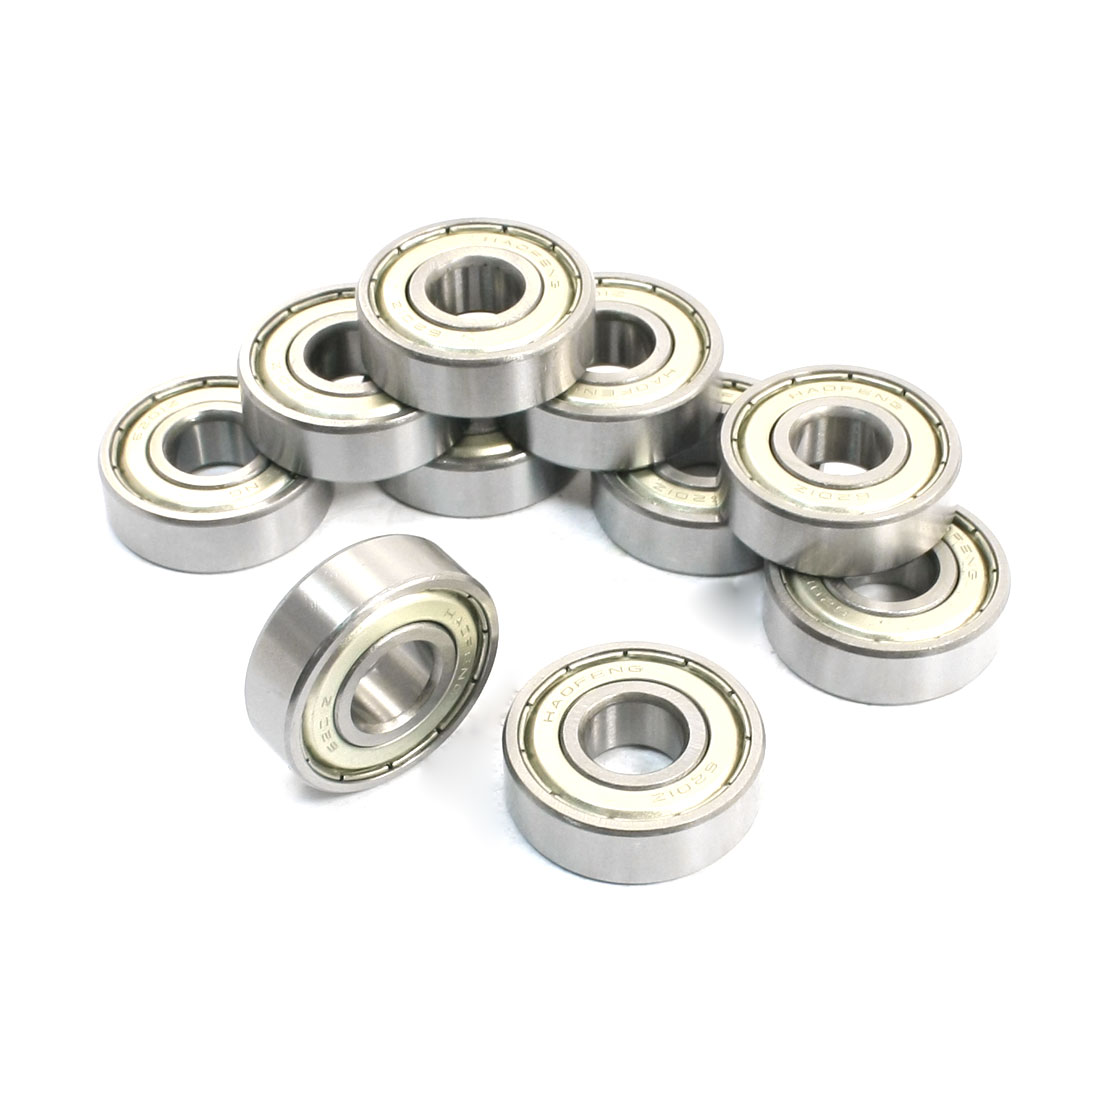 12mm x32mm x 10mm Shielded Deep Groove Radial Ball Bearings 6201ZZ 10 Pcs